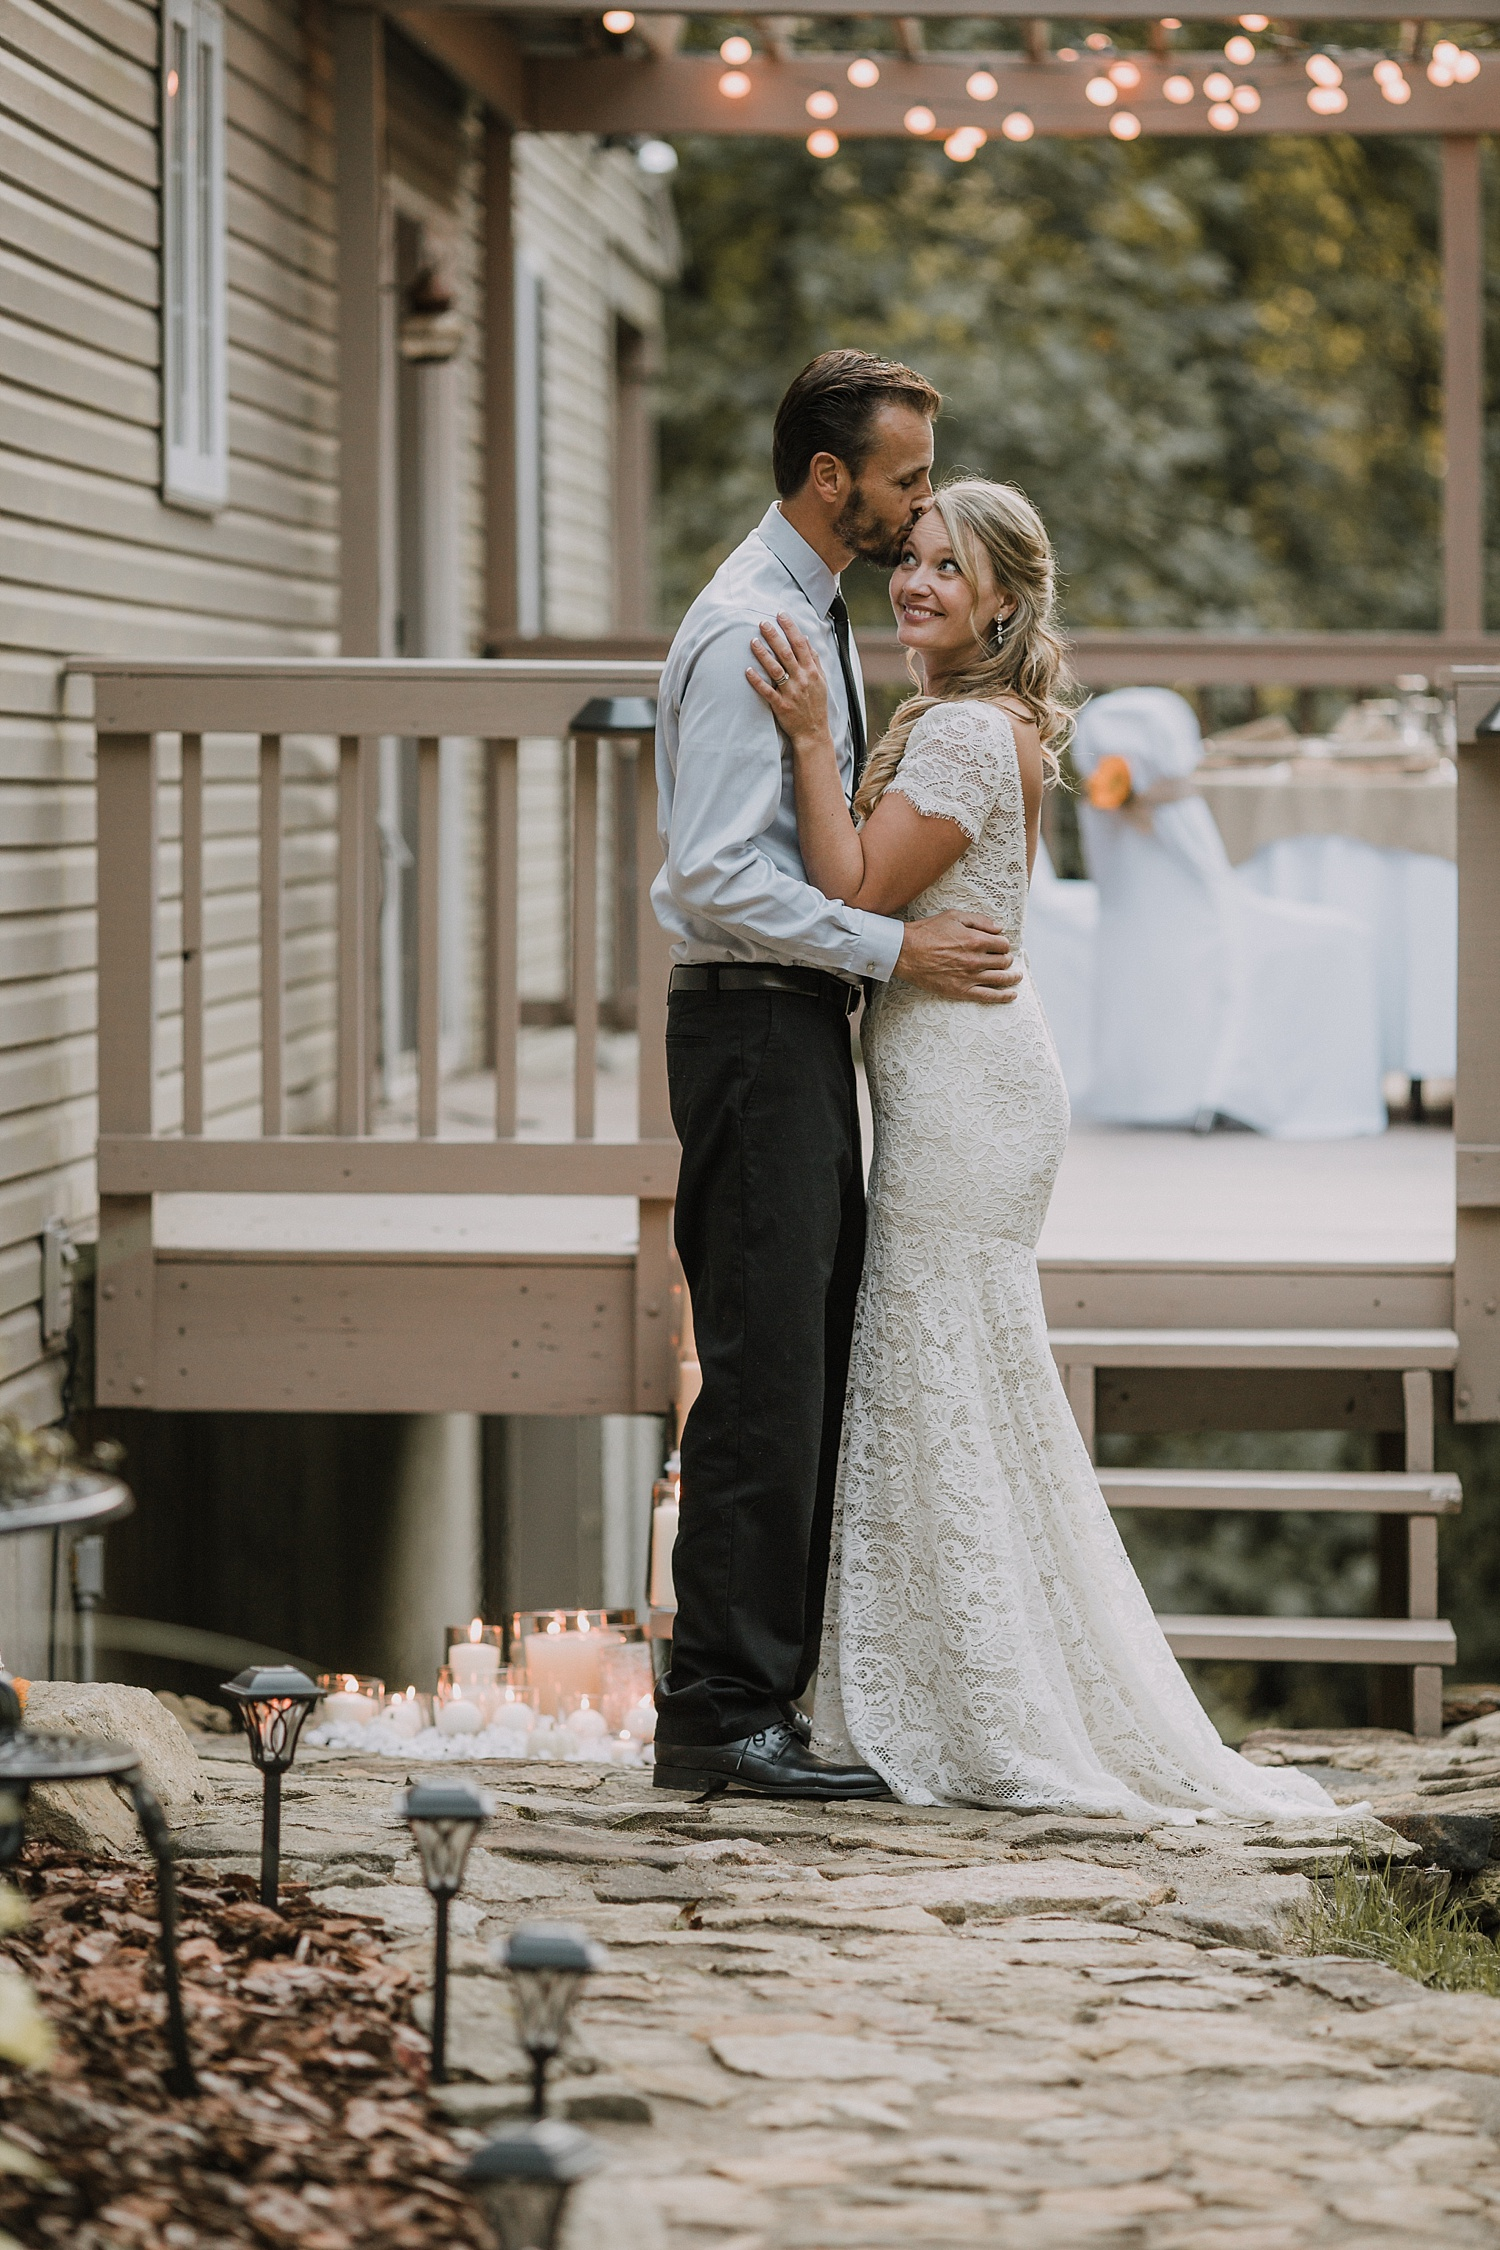 Lehigh Valley Alburtis Pennsylvania fall rustic intimate backyard wedding photographer